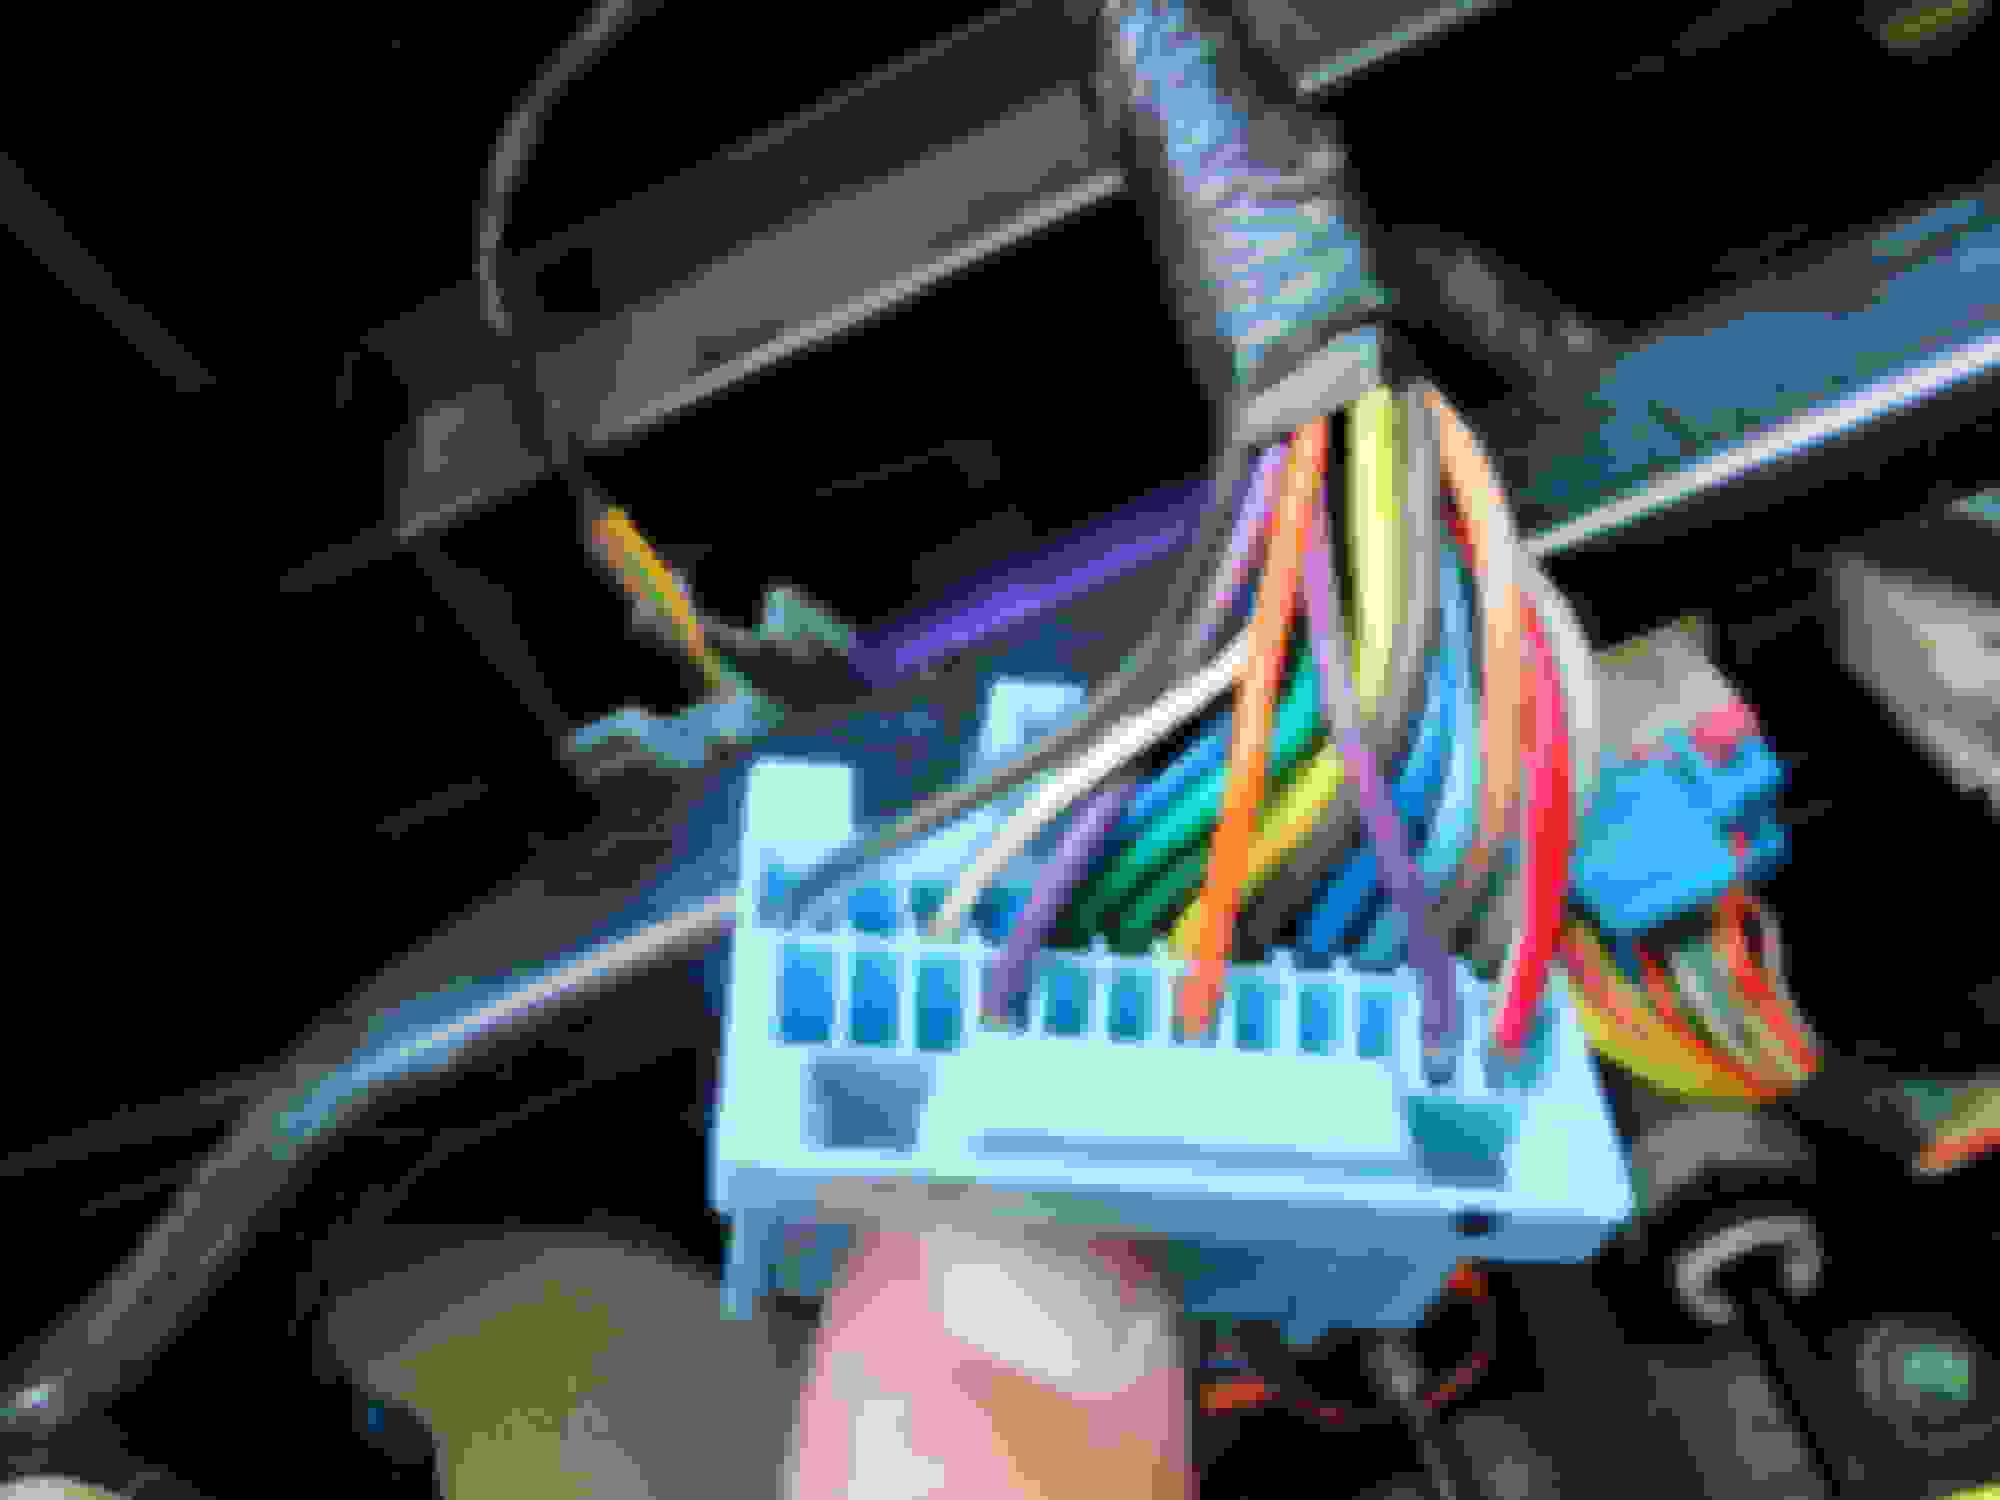 Wiring Diagram For 1999 Suburban Factory Amp Harness Chevrolet Forum Chevy Enthusiasts Forums